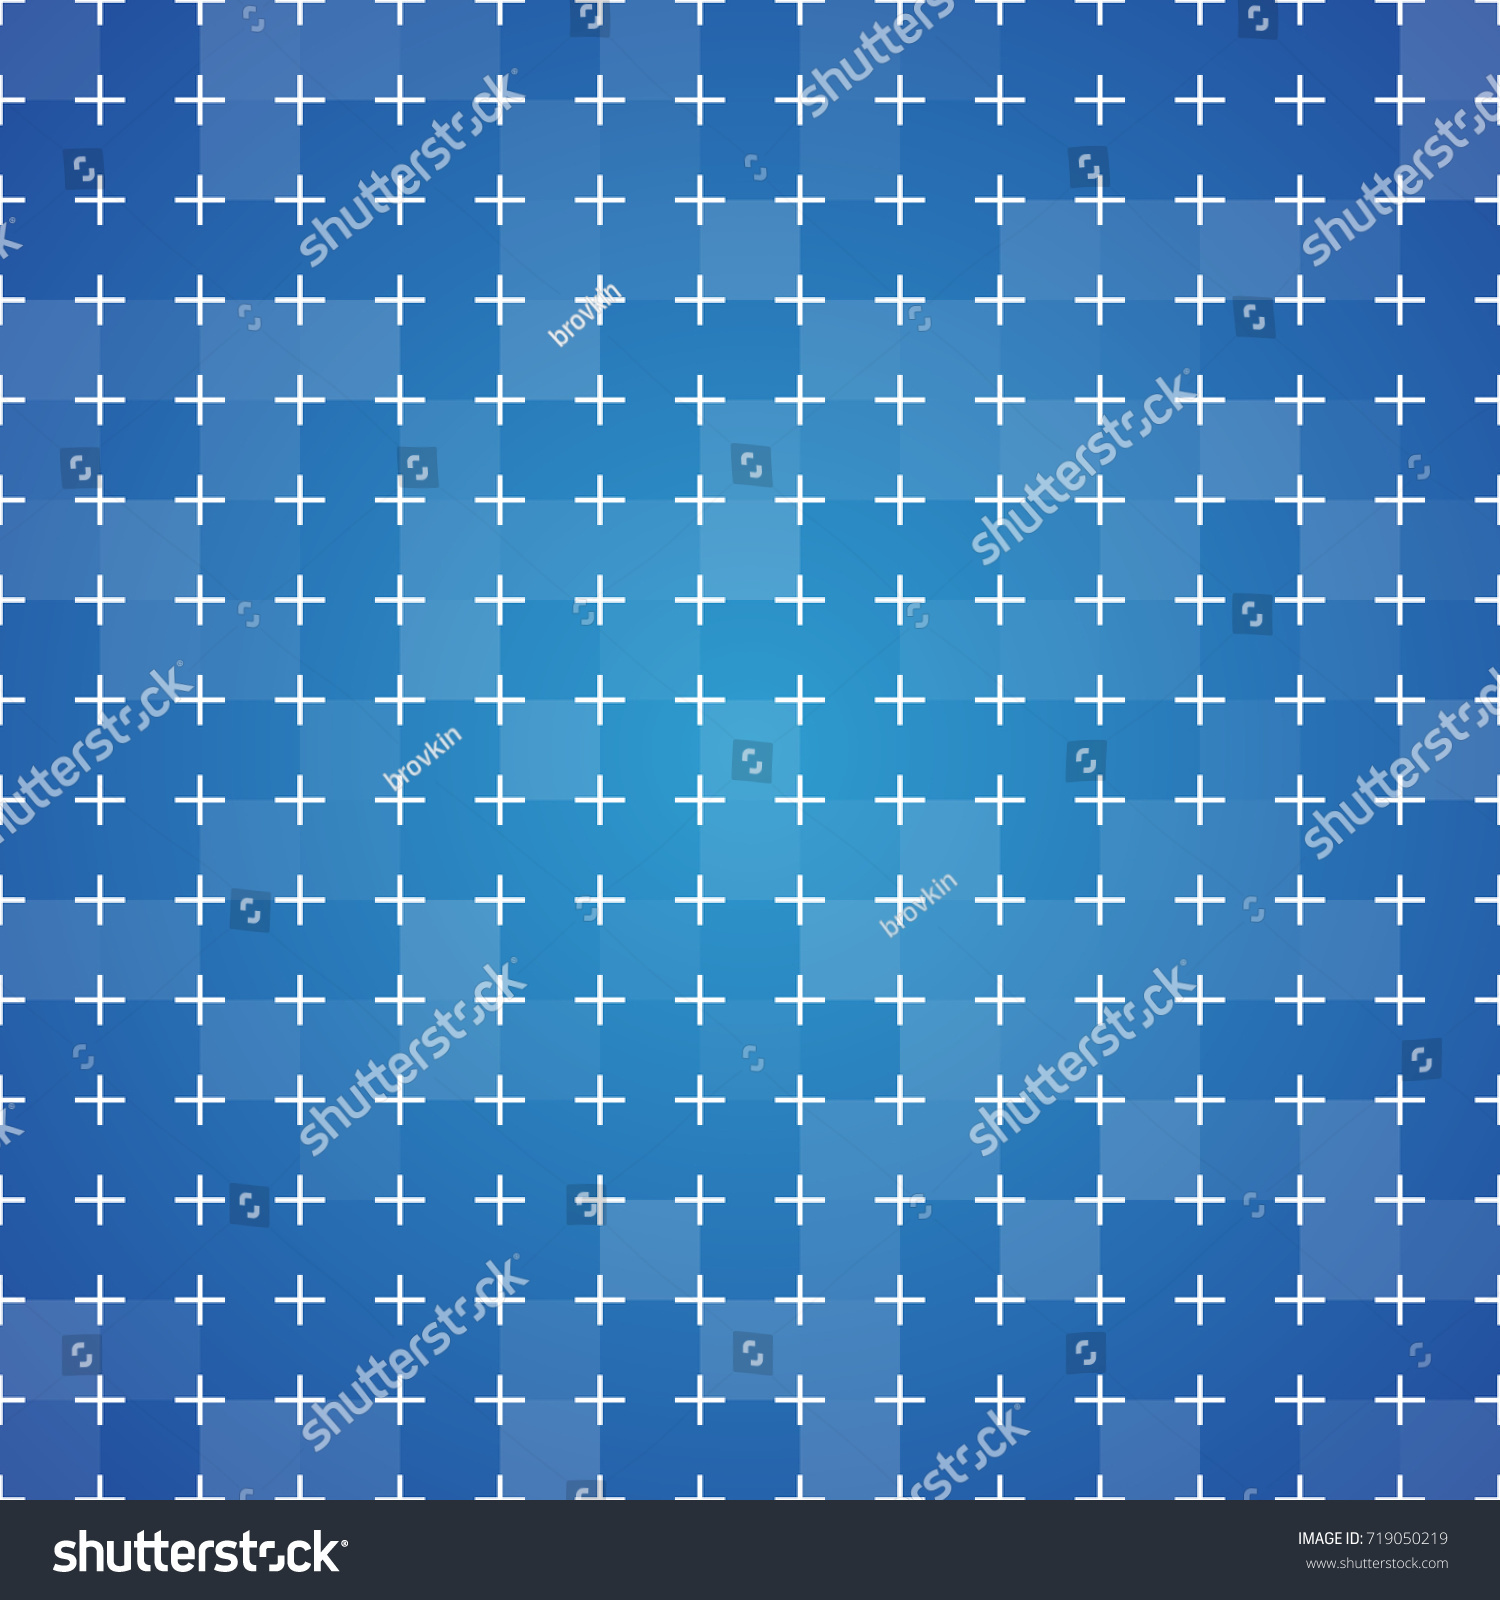 Blueprint background crossmarking grid vintage colorful stock vector blueprint background with cross marking grid vintage colorful texture vector illustration malvernweather Gallery